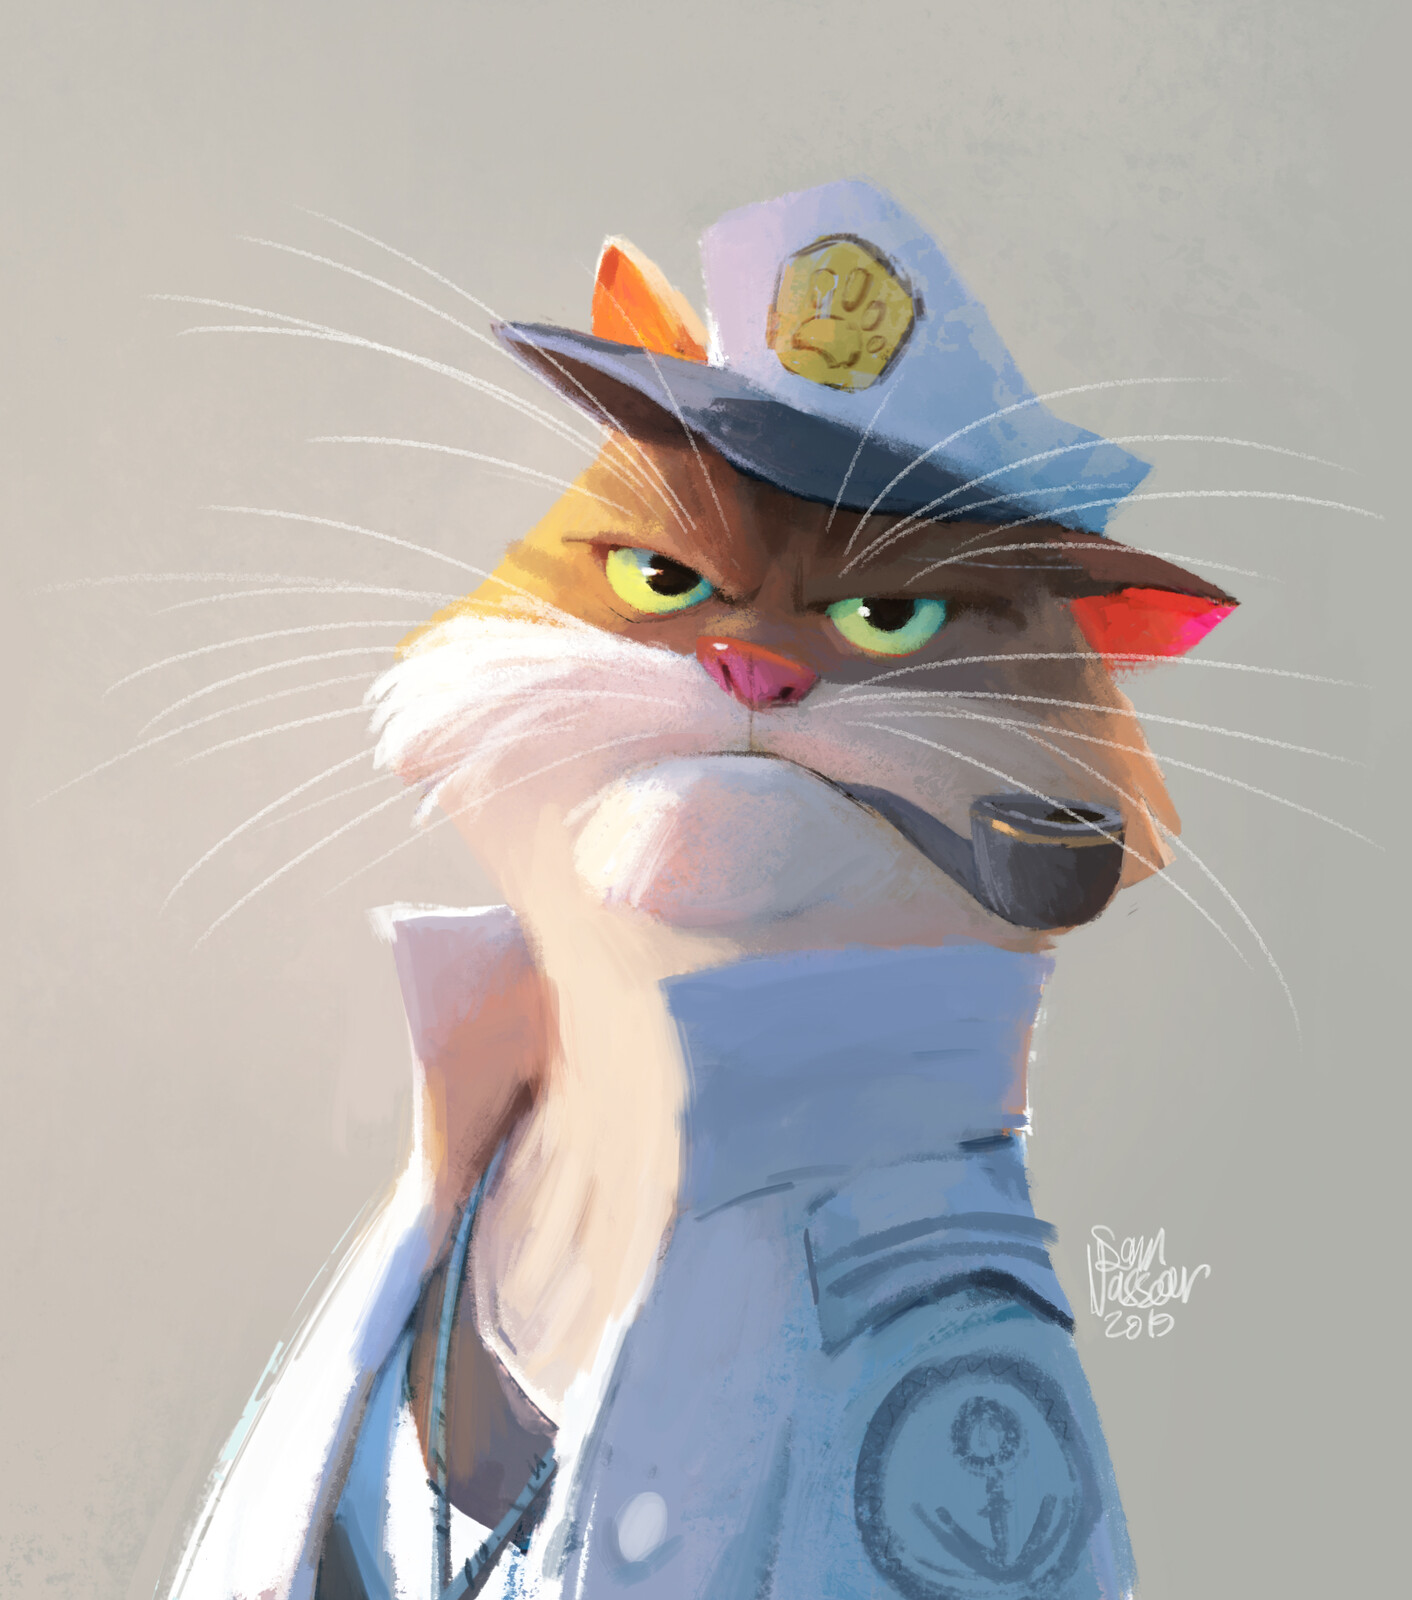 Captain Whiskers